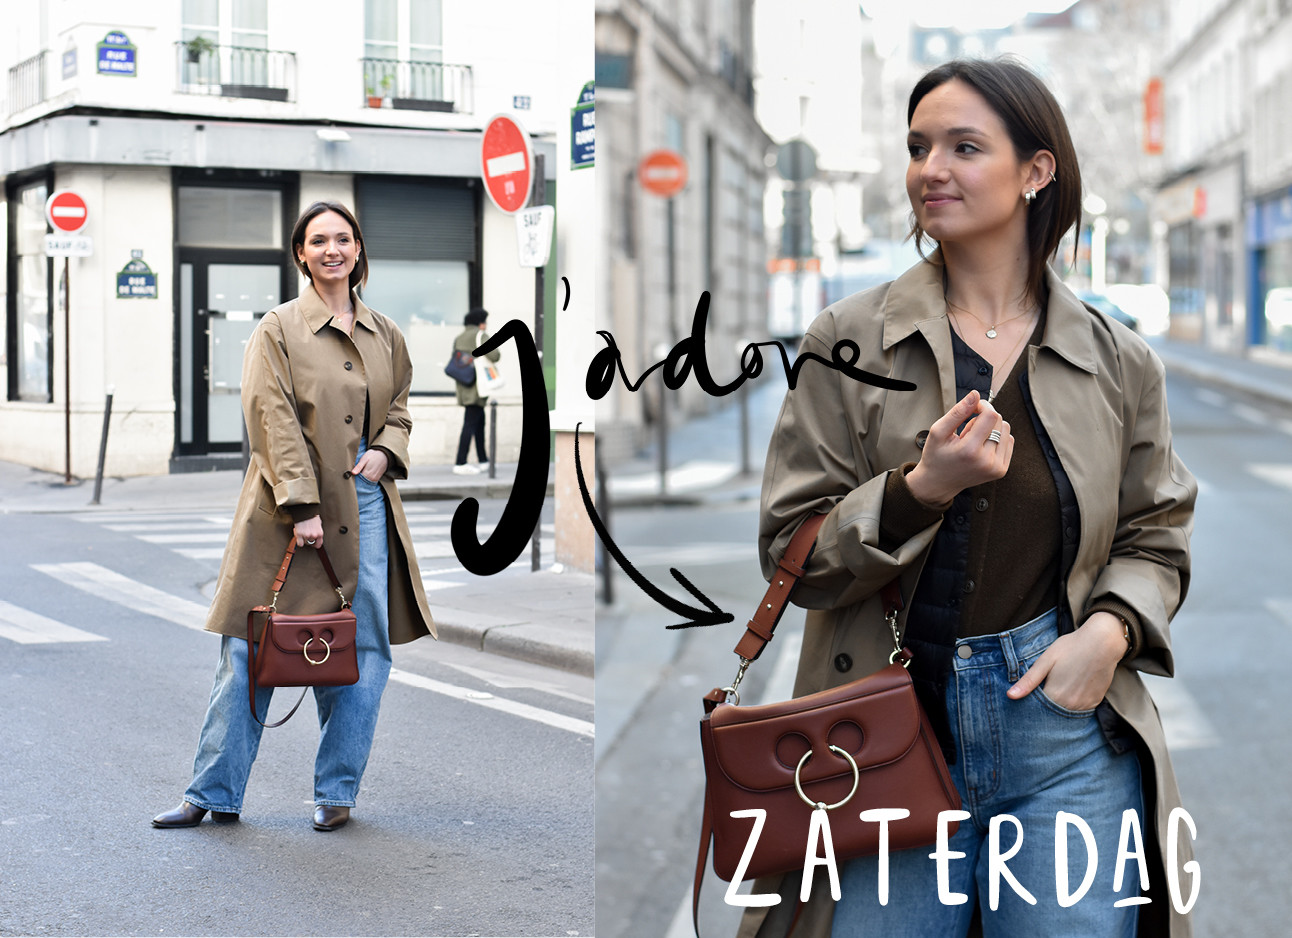 carlotta in streets of paris holding bag wearing coat, outfit Uniqlo